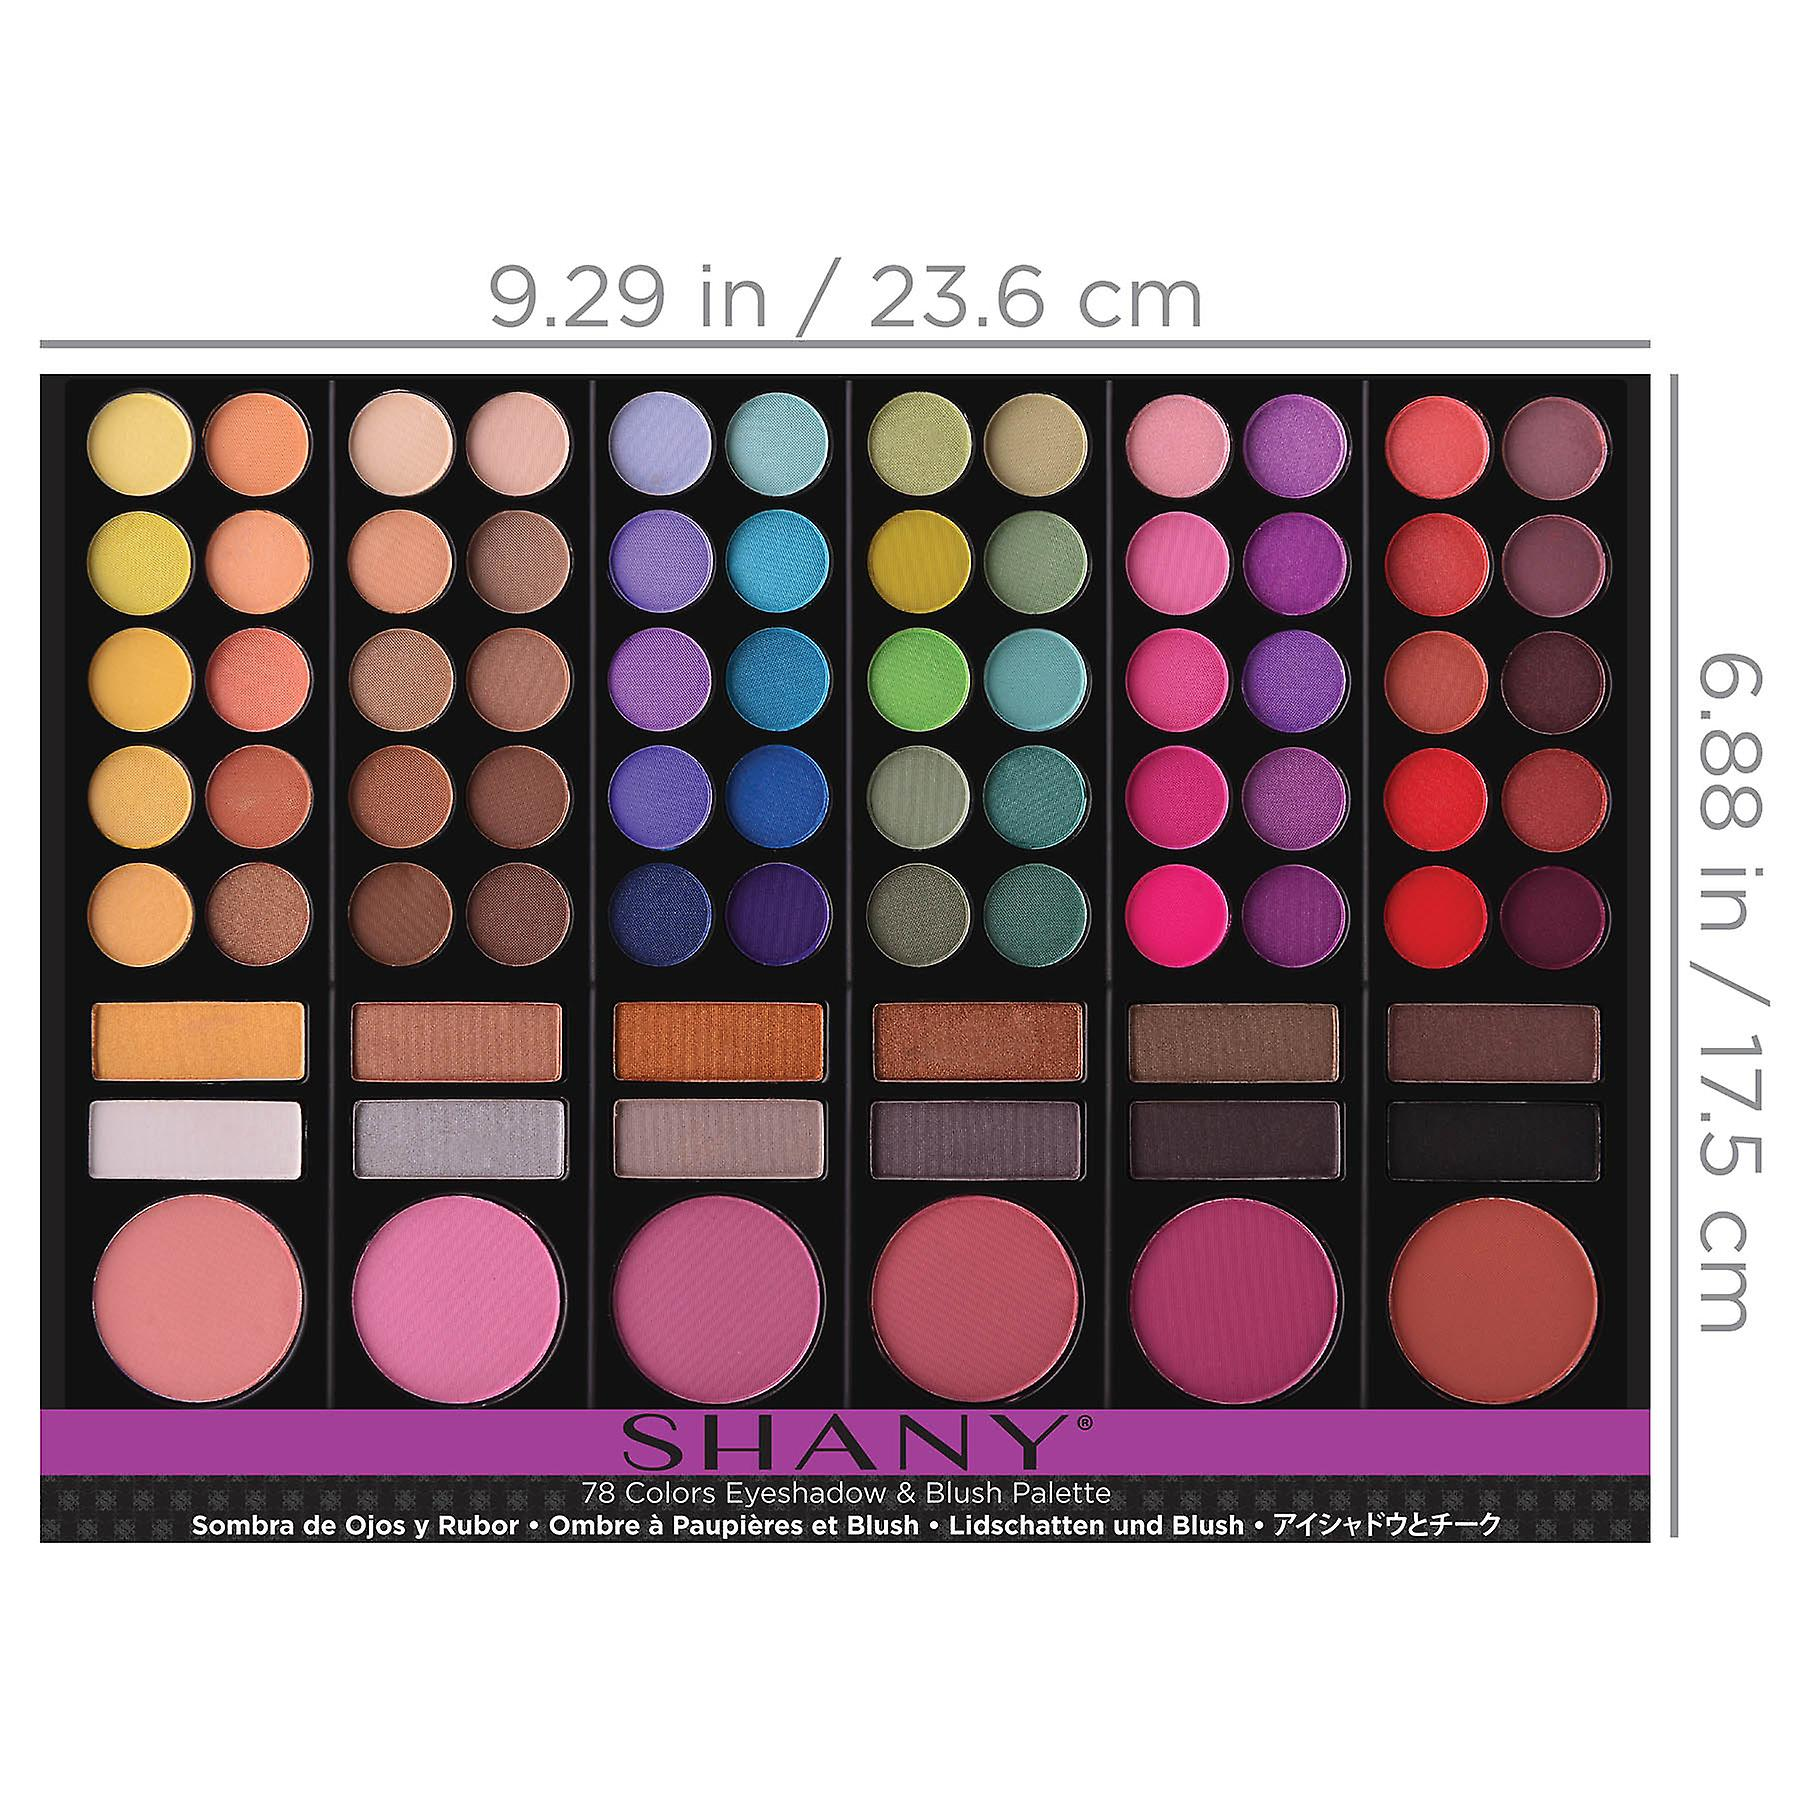 SHANY Eye shadow & Blush and Face powder Palette 78 Color Cosmetics Makeup Palette